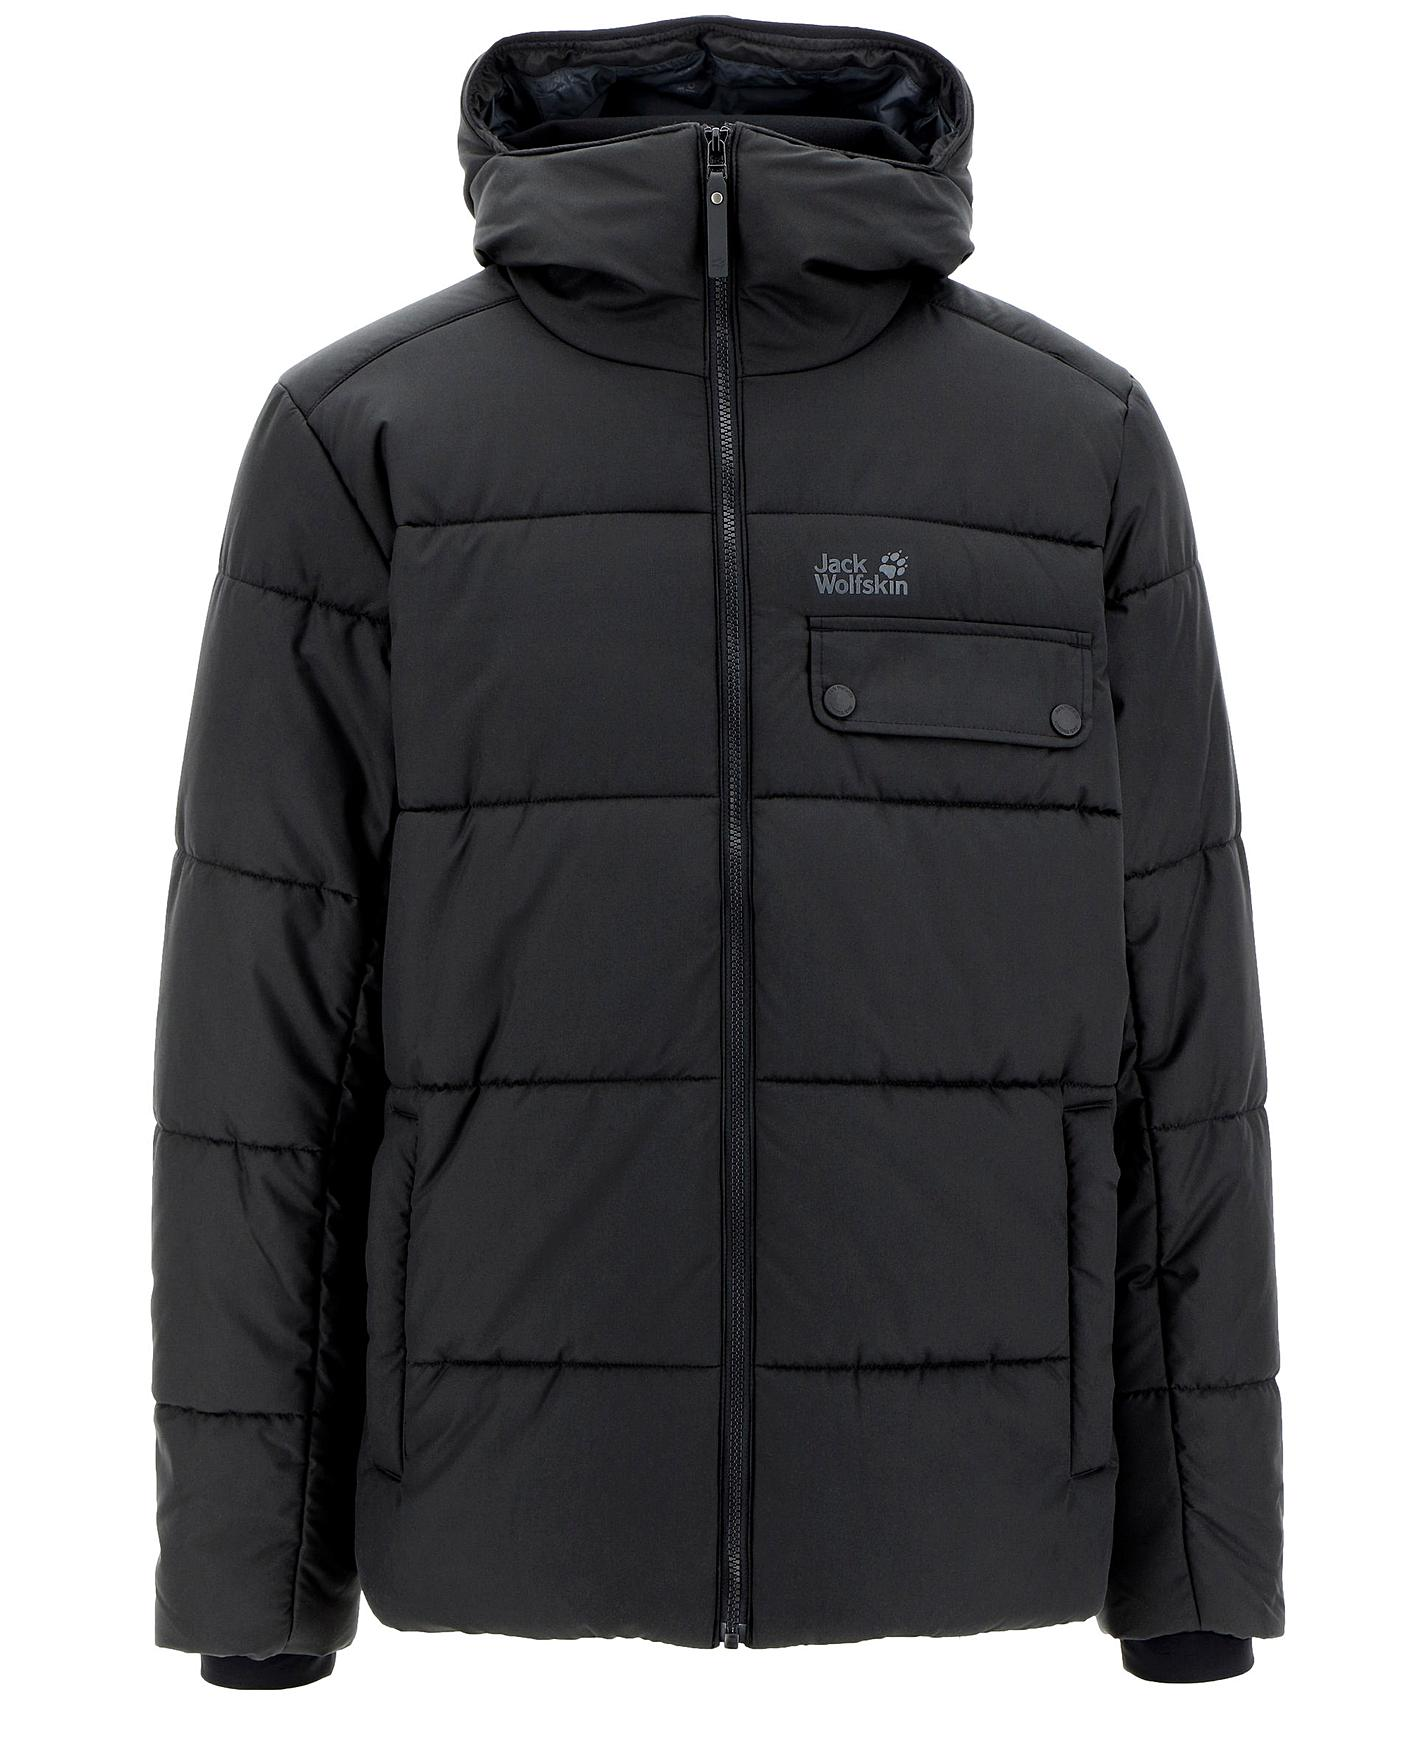 Jack Wolfskin Jacket .Size 28 in CF39 Tonypandy for £30.00